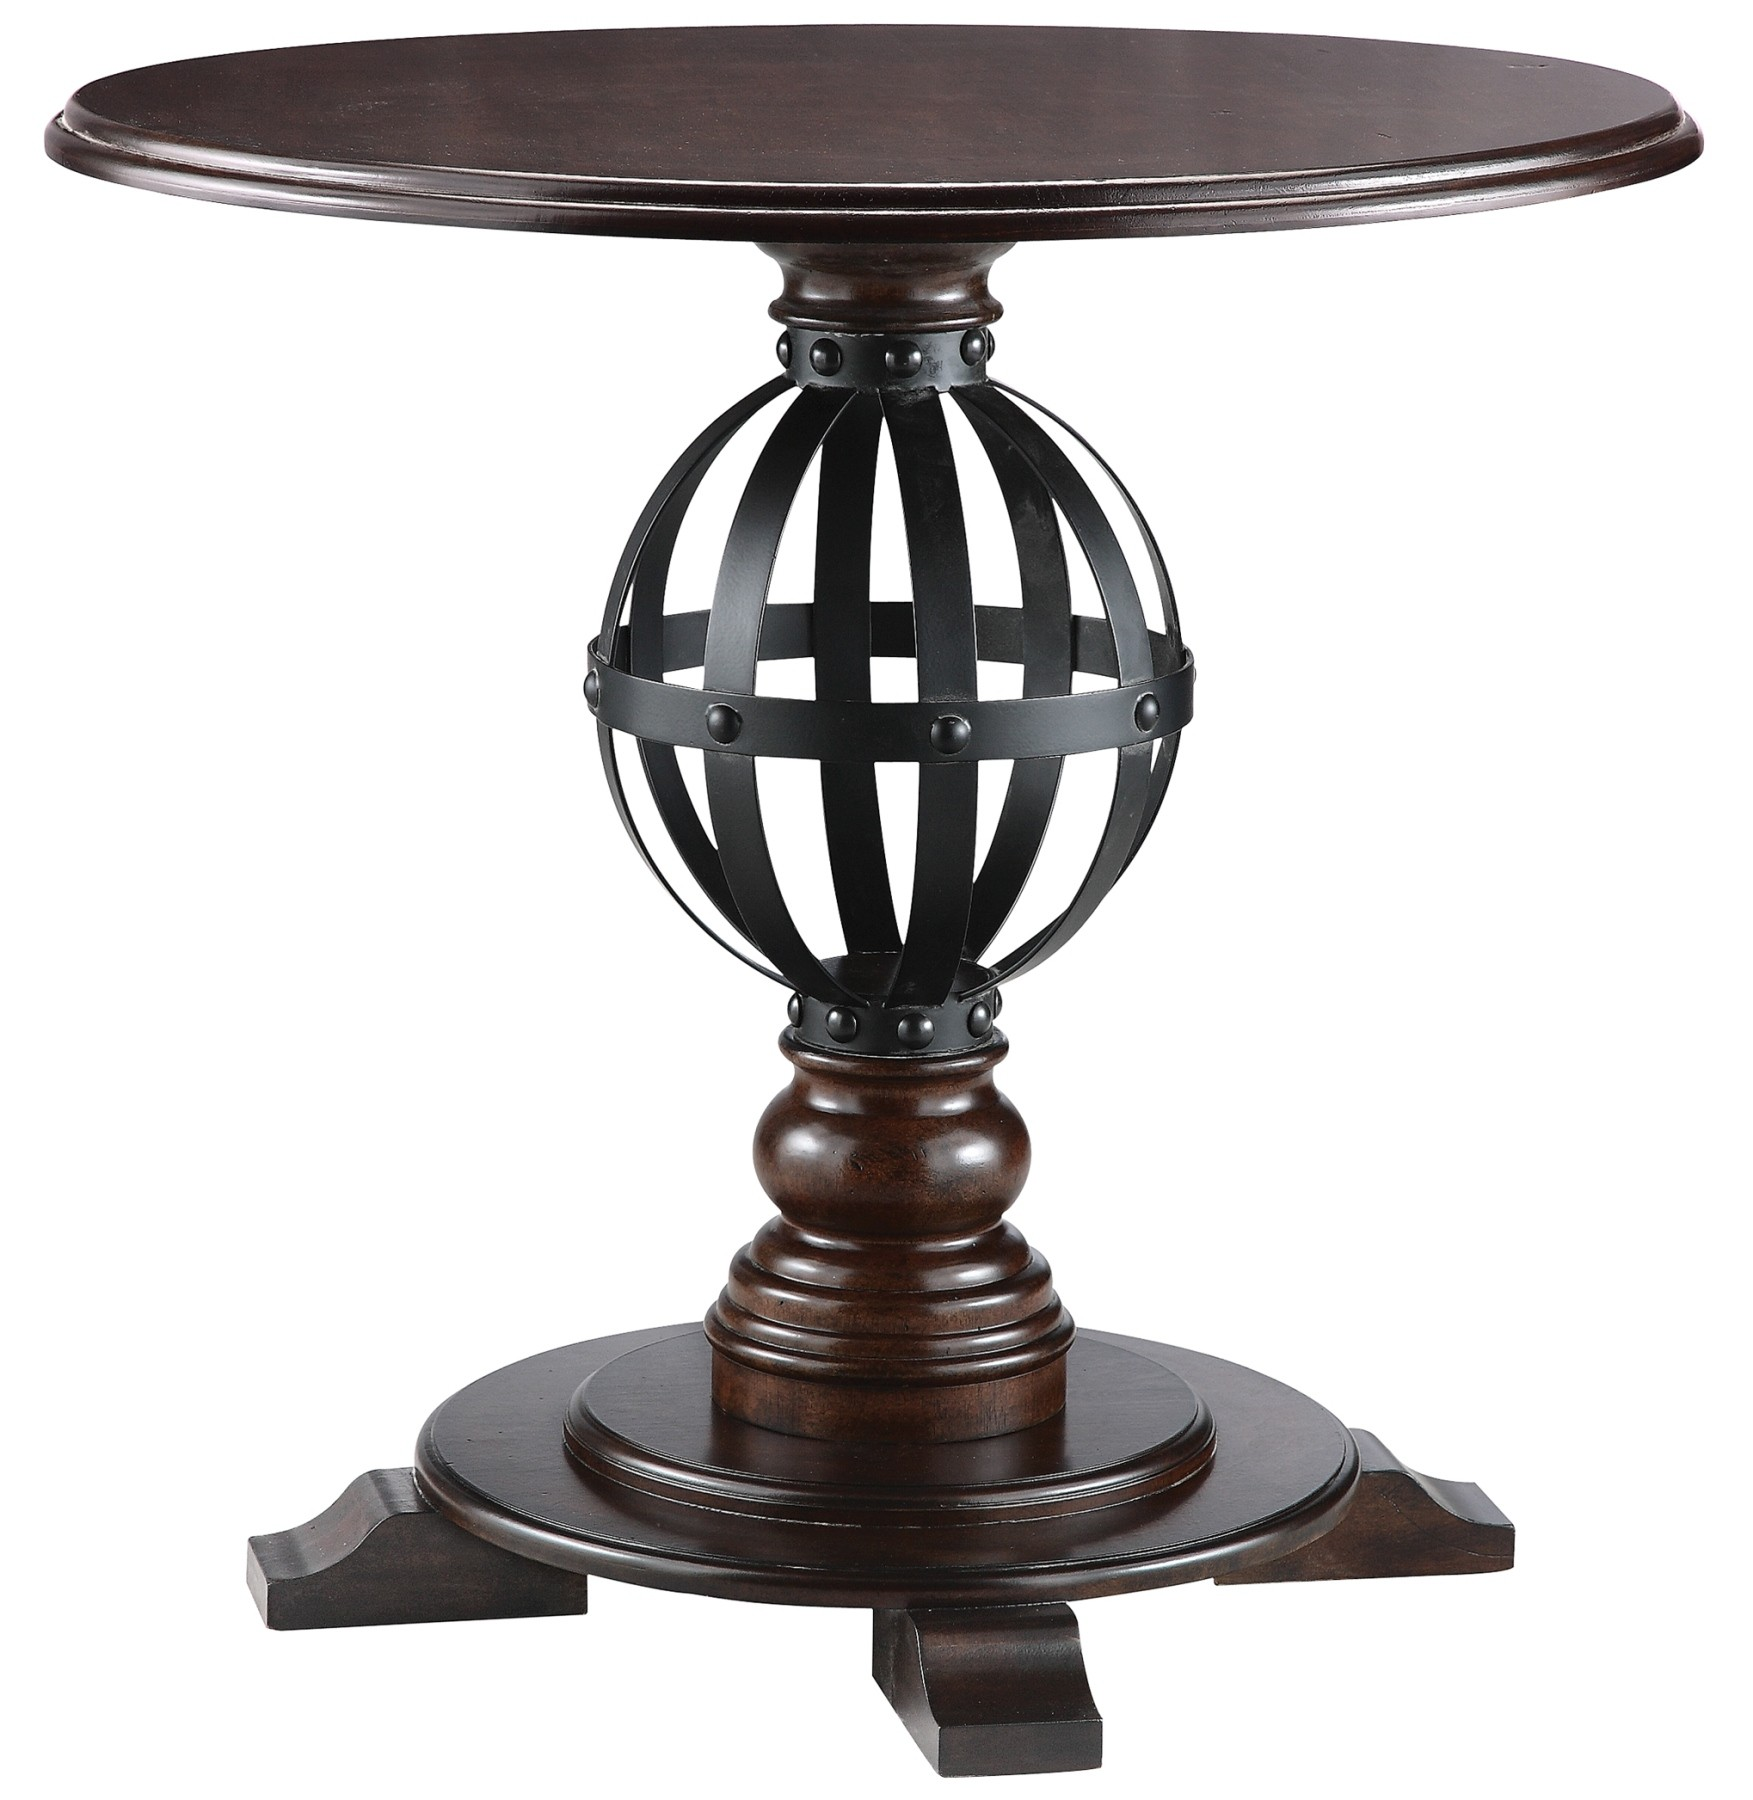 round accent table with metal sphere stein world iron glynn teal kitchen decor traditional dining room furniture bedside west elm interior ideas outdoor recliner chest high coffee